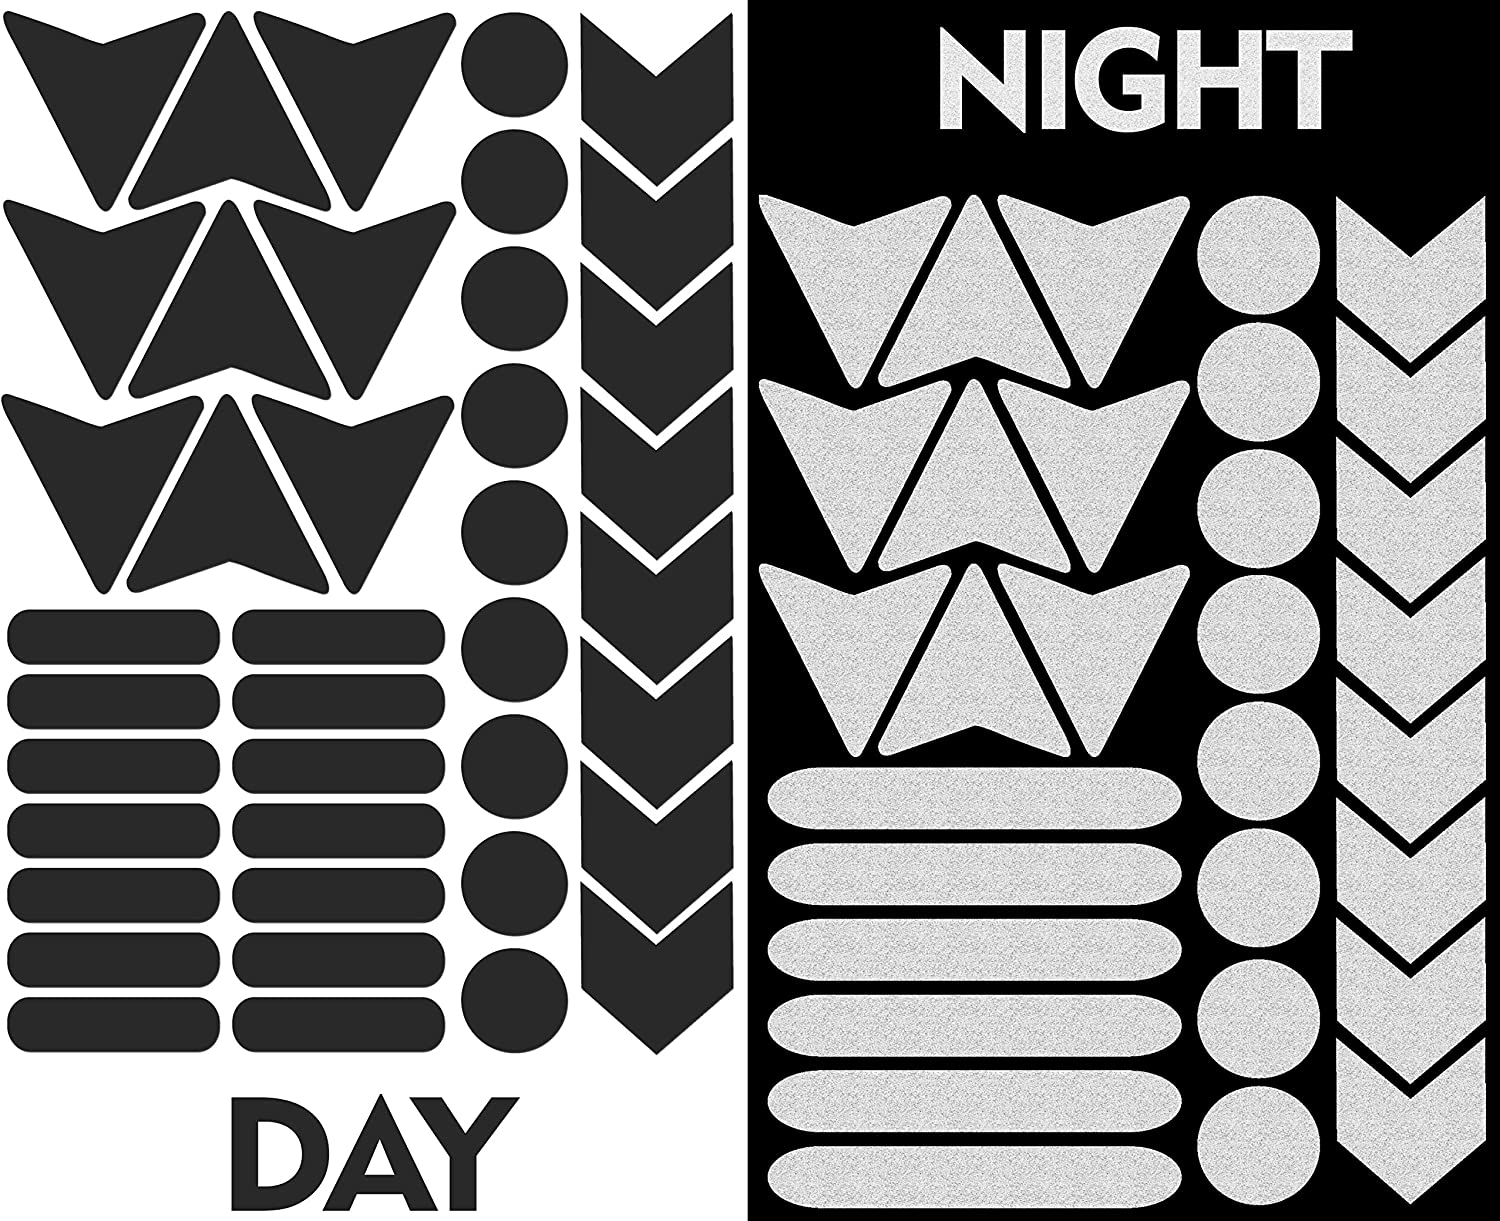 Biomar Labs/® 40pcs High Visibility Warning Reflective Stickers Kit Decals Black Reflector Highly Night Safety Visibility Universal Self Adhesive D 46